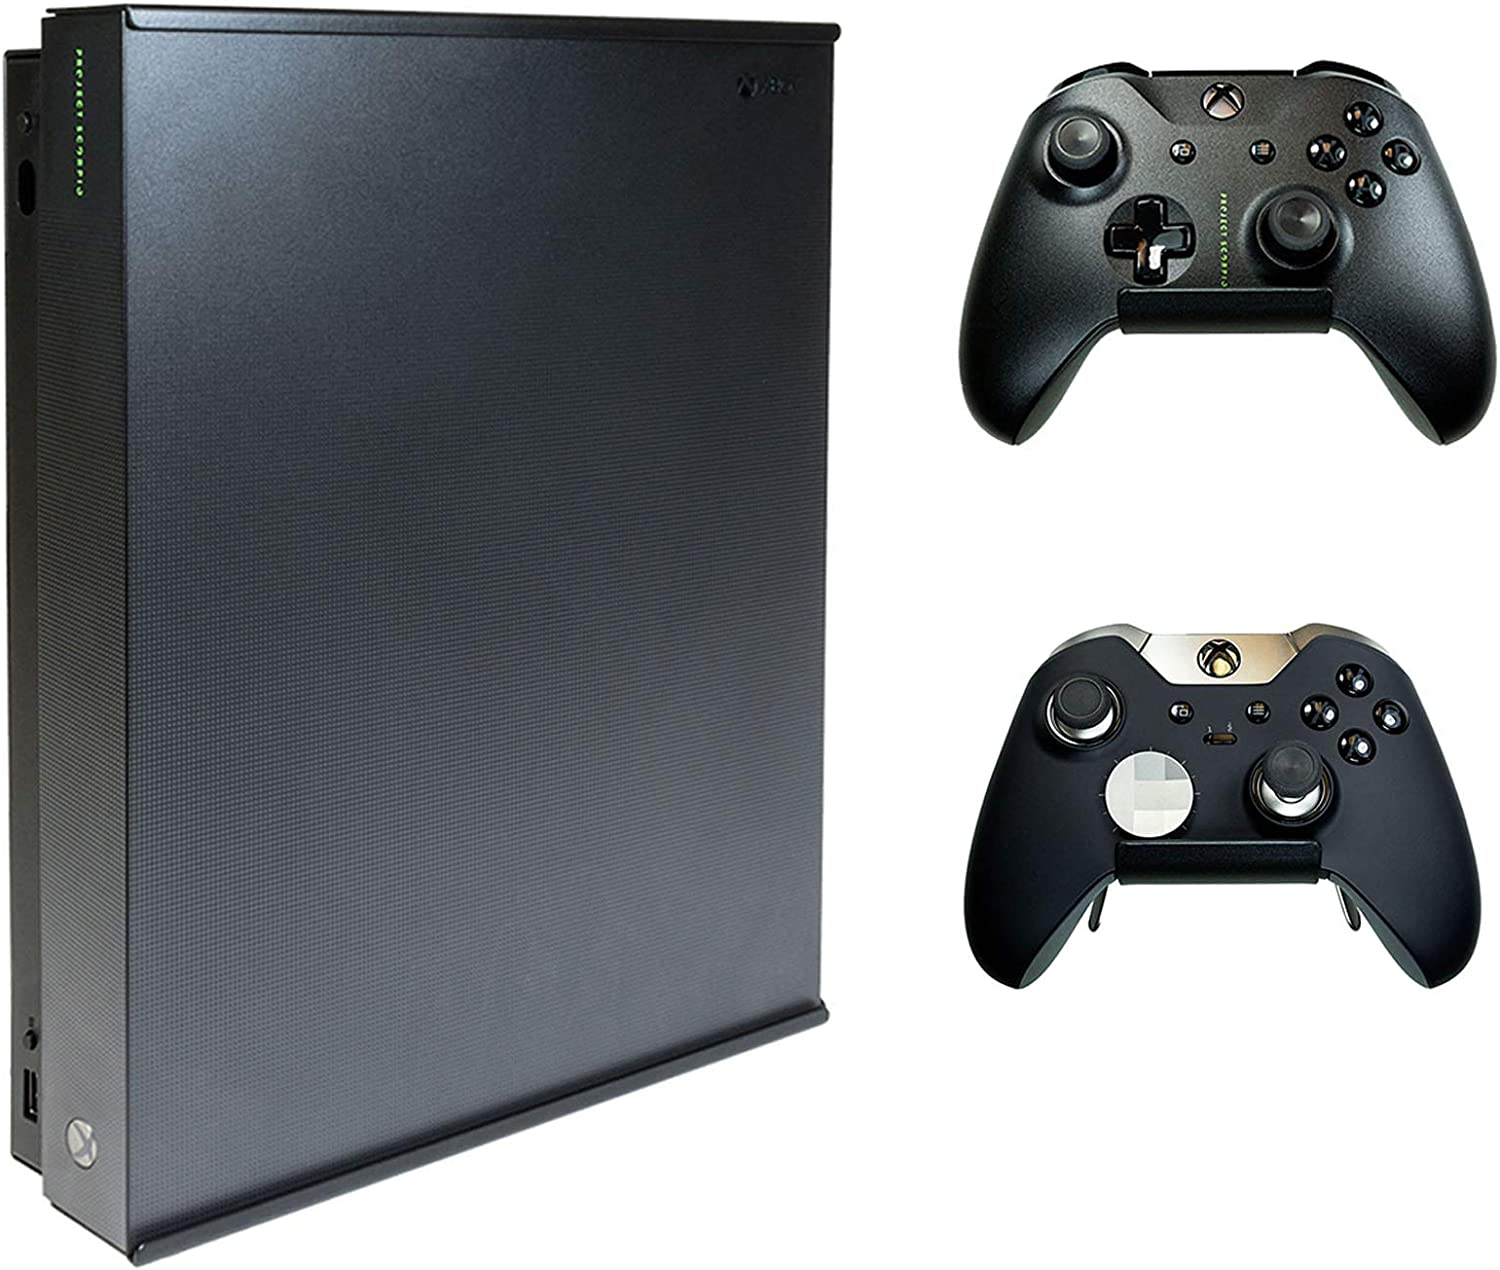 HIDEit X1X Xbox One X Wall Mount and (2) Controller Wall Mounts (Xbox One X Bundle) - HIDEit Behind the TV or DISPLAYit - Made in the USA and Trusted Worldwide Since 2009